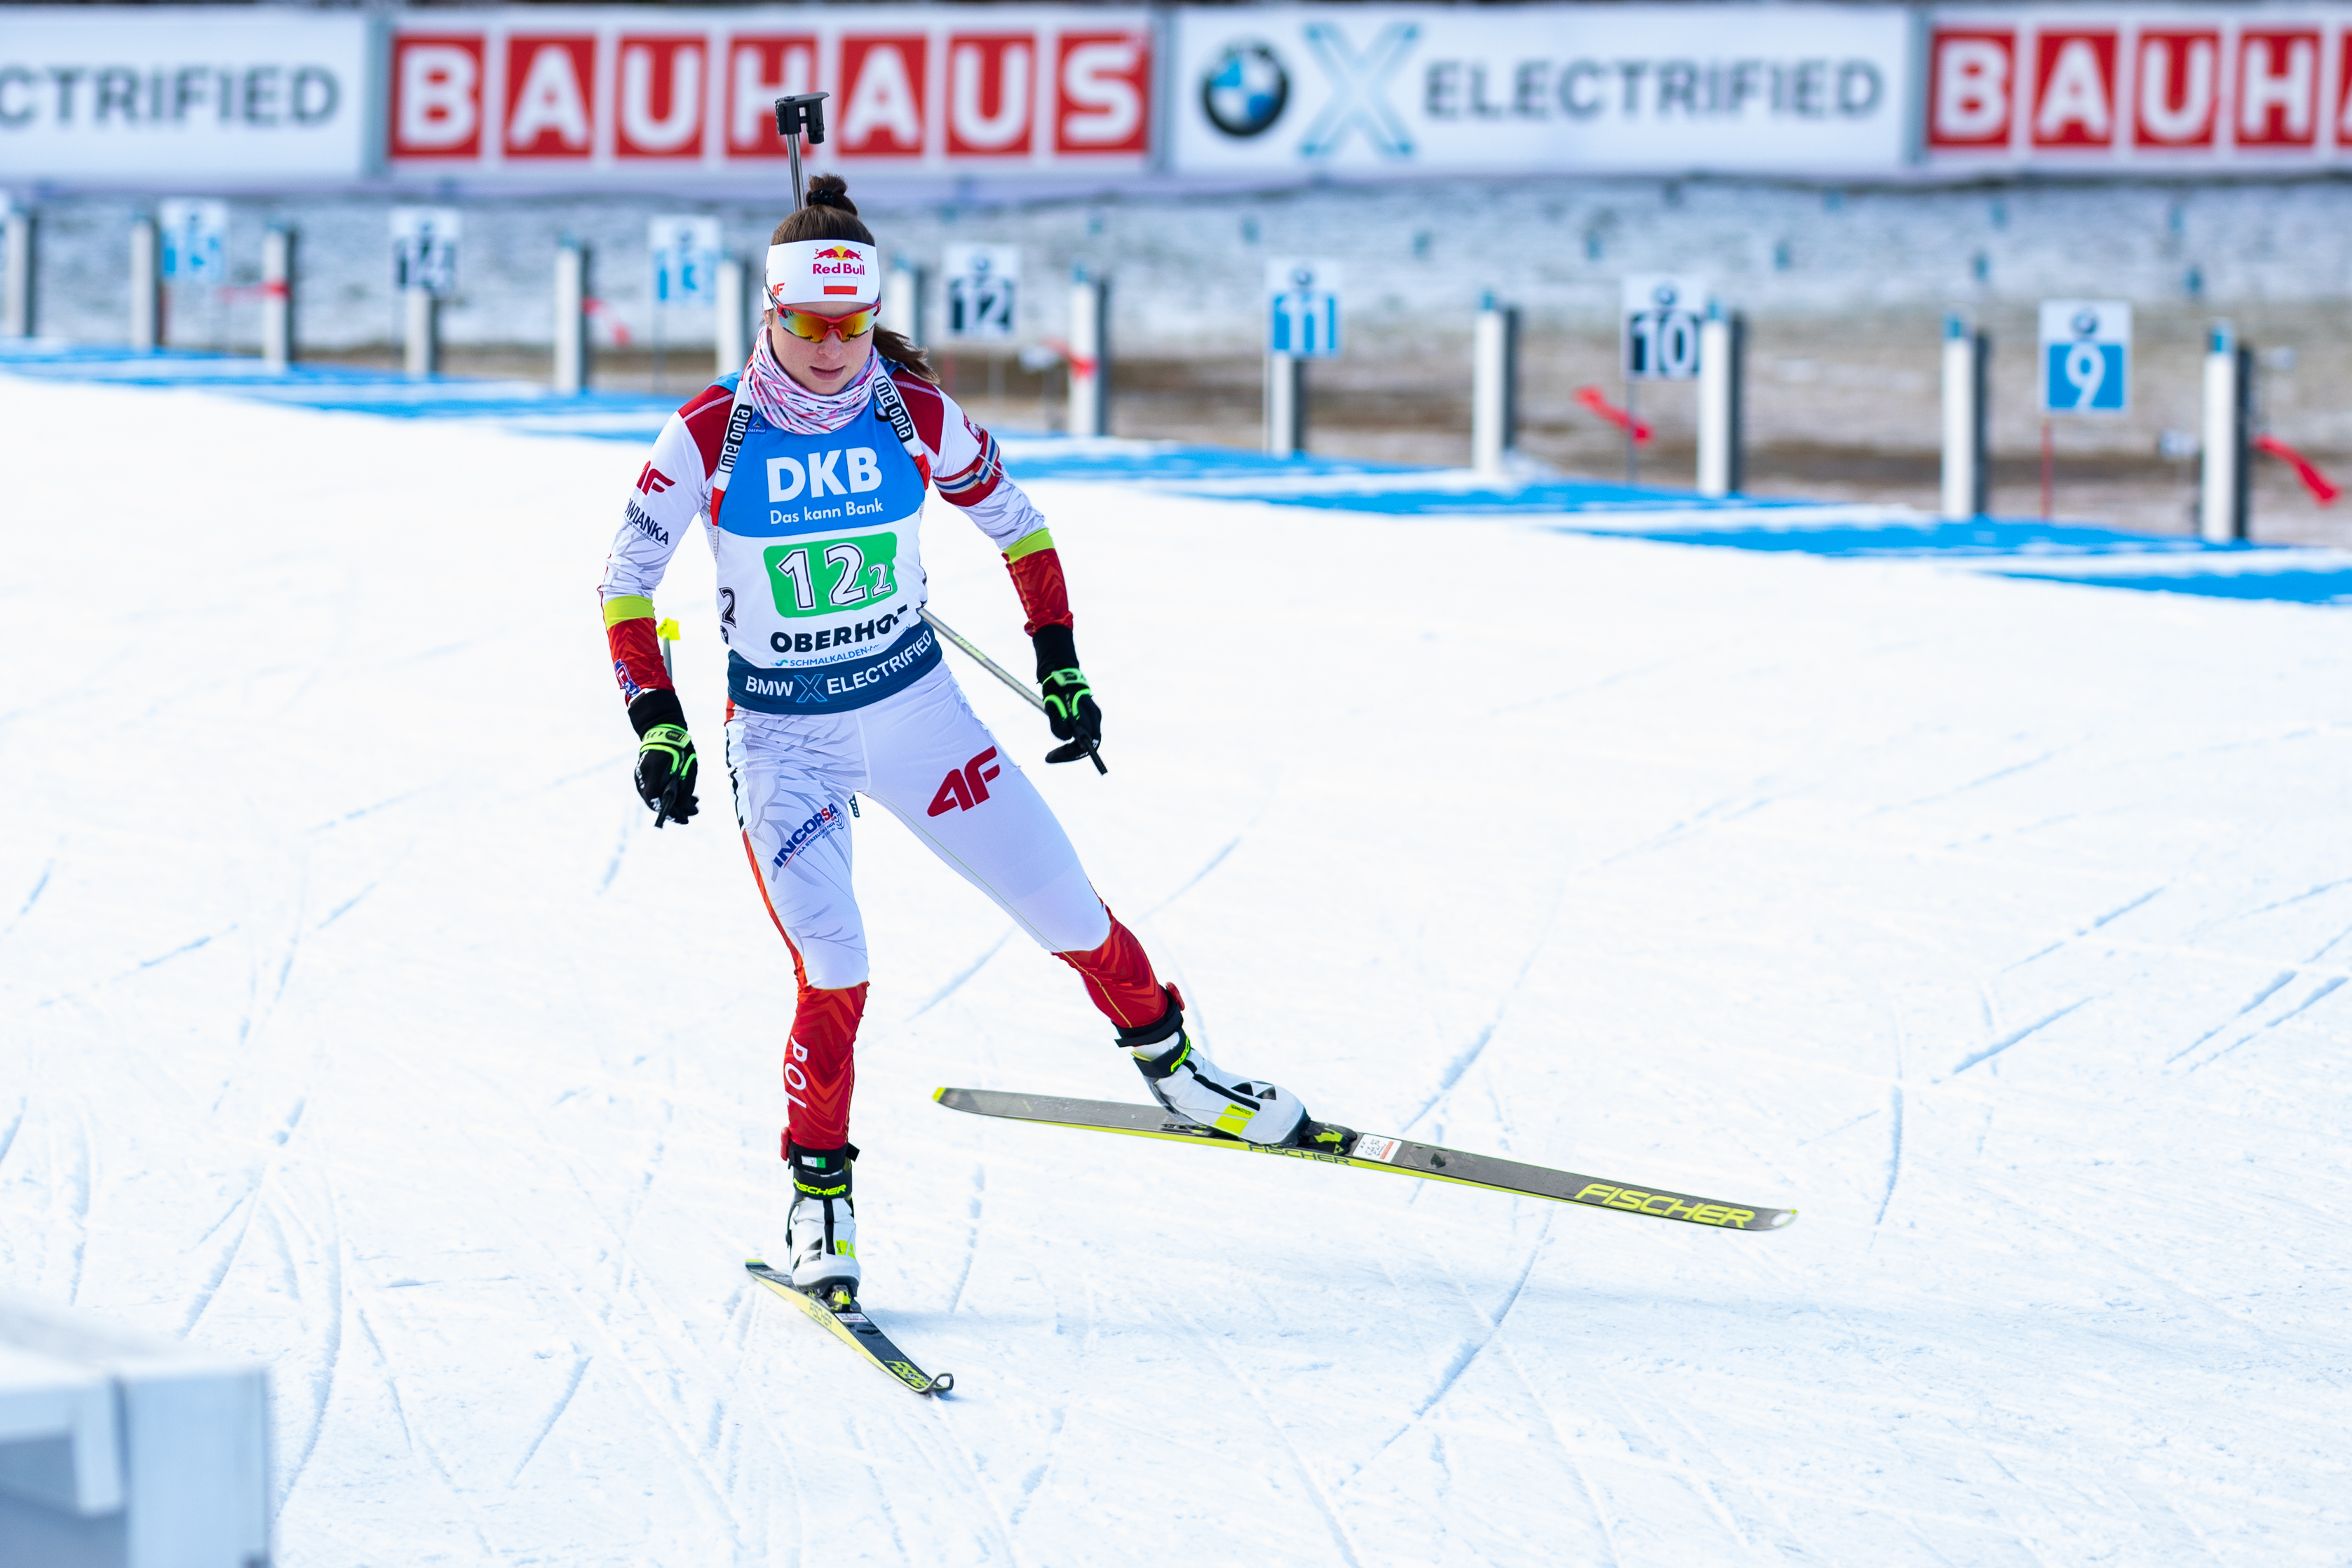 File:2020-01-11 IBU World Cup Biathlon Oberhof 1X7A4584 by Stepro.jpg - Wikipedia